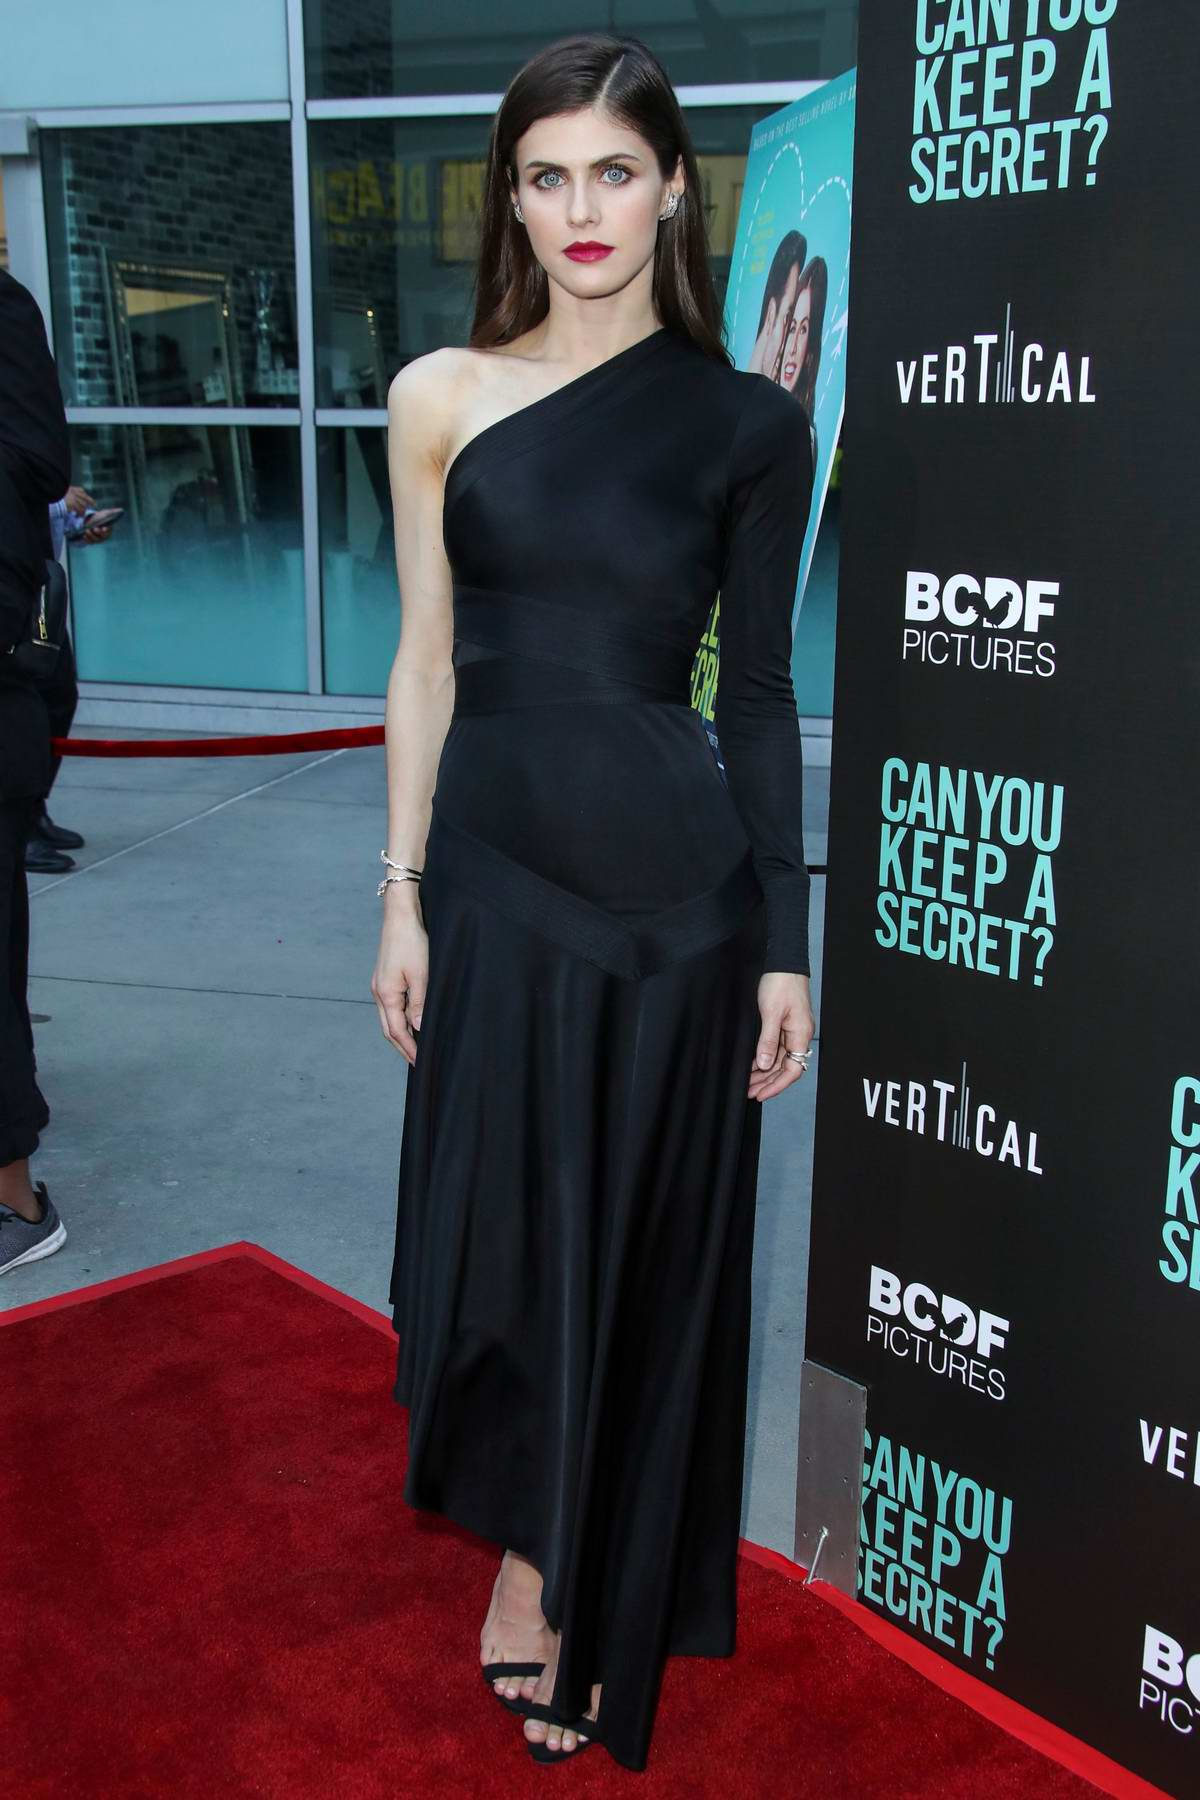 Alexandra Daddario attends the premiere of 'Can You Keep a Secret' at Arclight Hollywood in Los Angeles